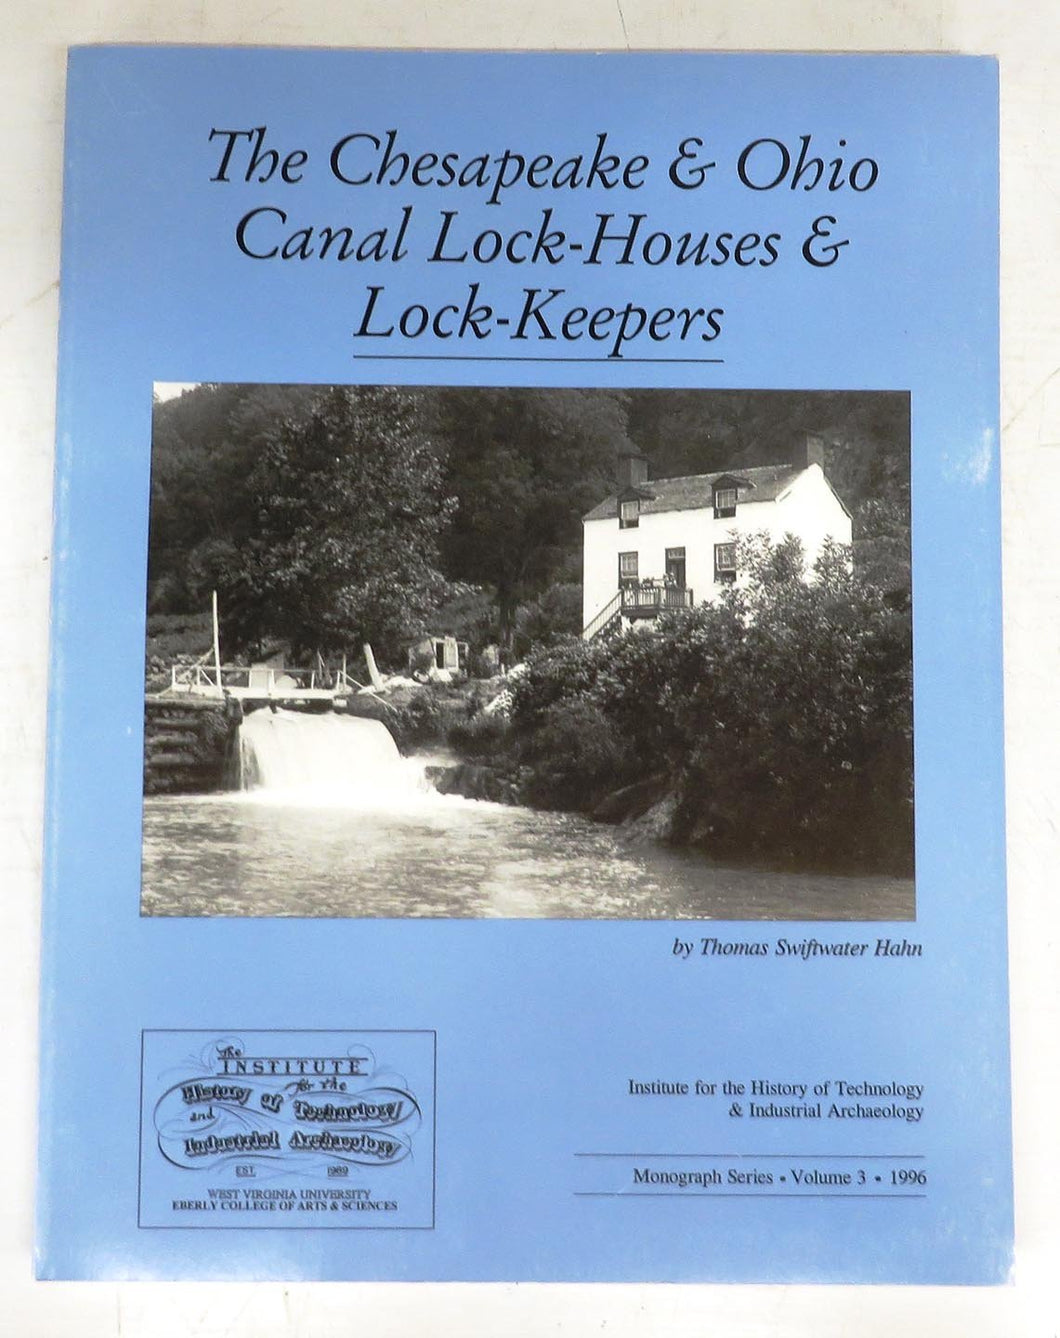 The Chesapeake & Ohio Canal Lock-Houses & Lock-Keepers